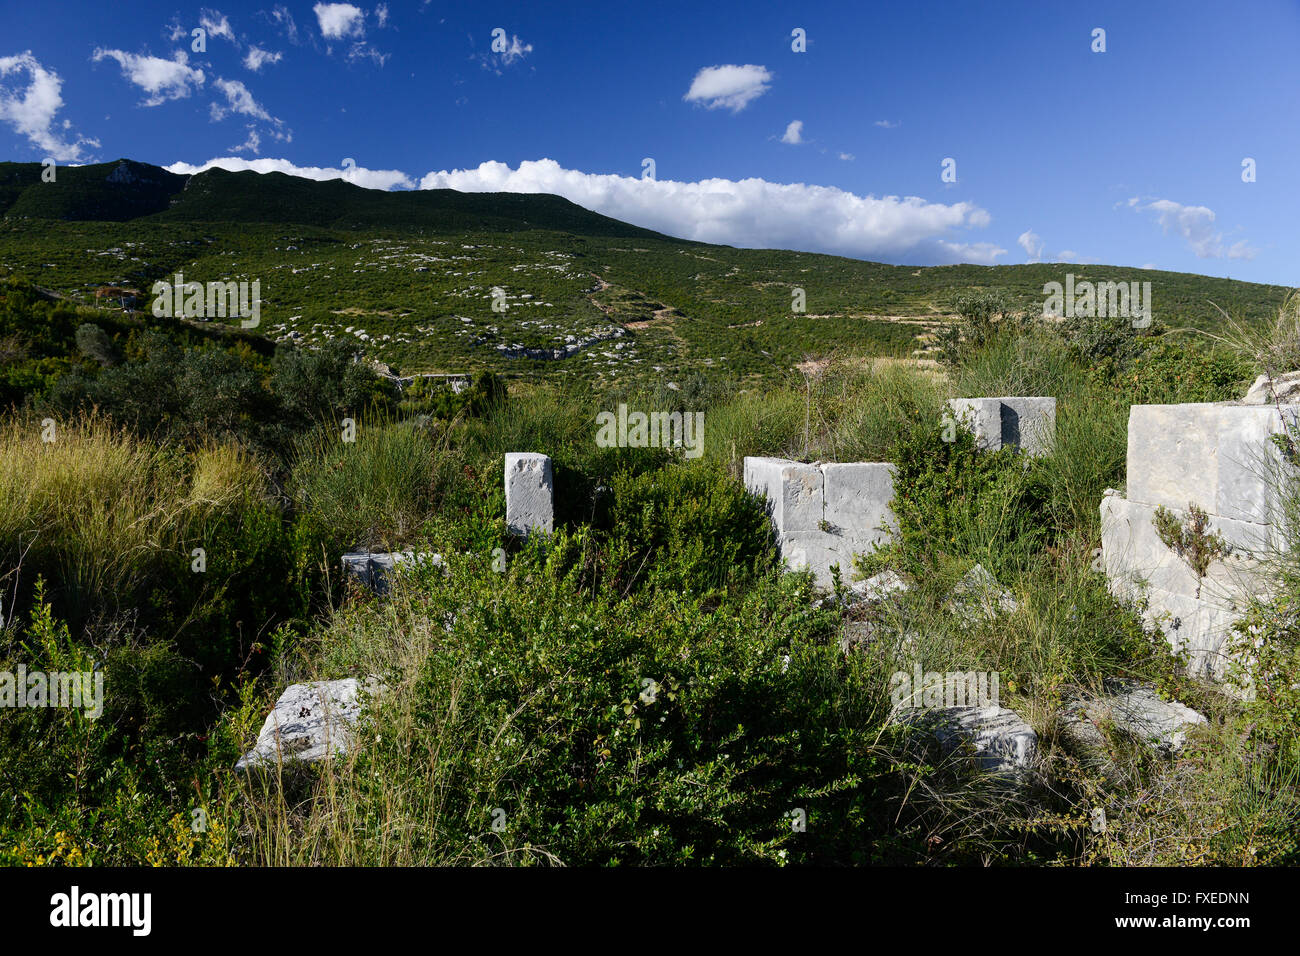 TURKEY Antakya, Musa Dagh, about 4000 armenian villagers fled during the genocide 1915 in world war I on the mountain - Stock Image